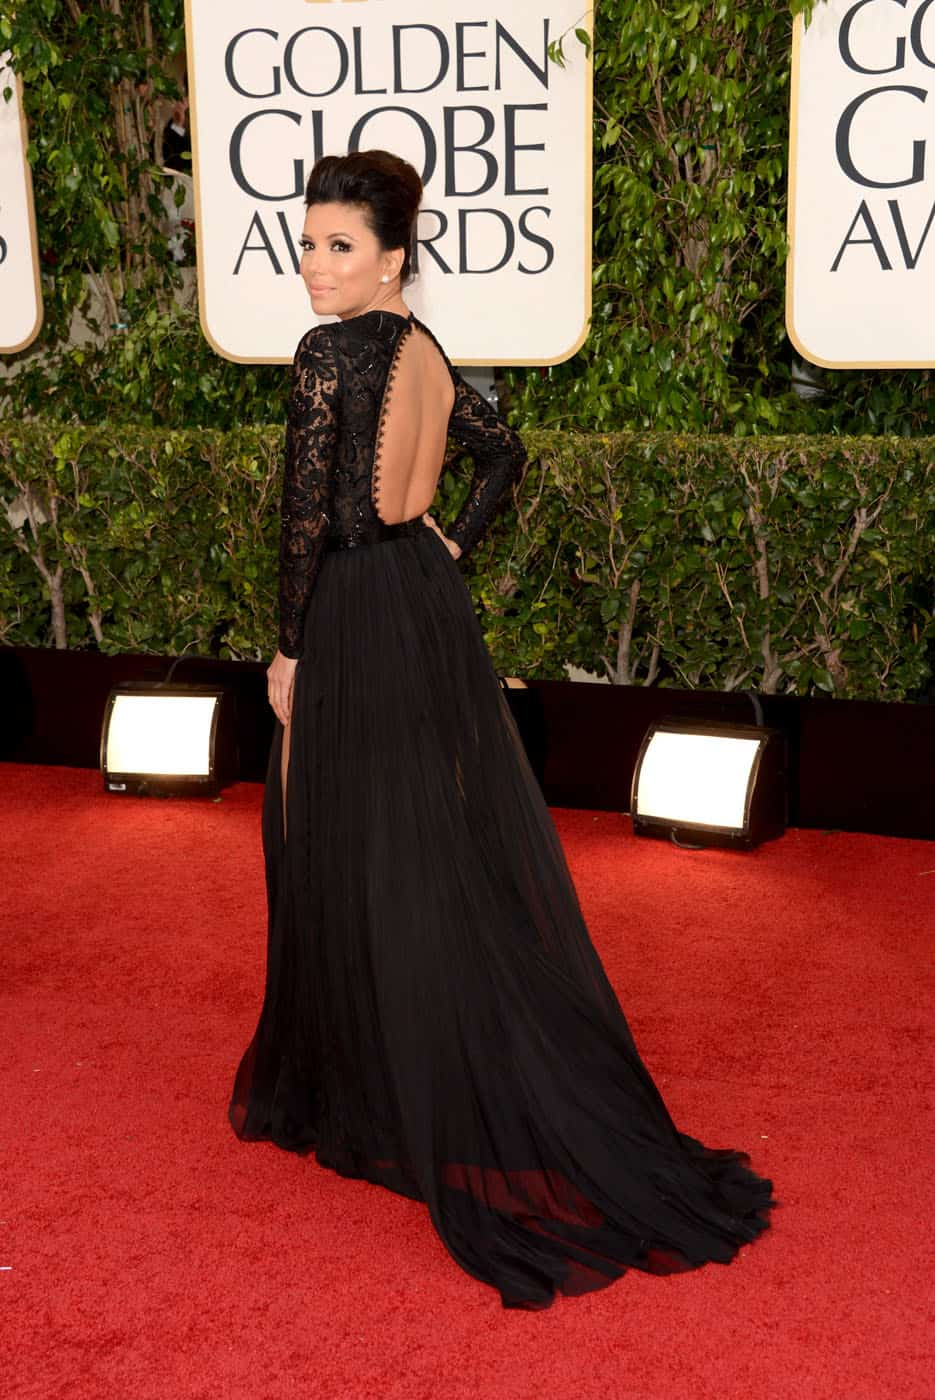 70th Annual Golden Globe Awards Arrivals The Fashion Tag Blog